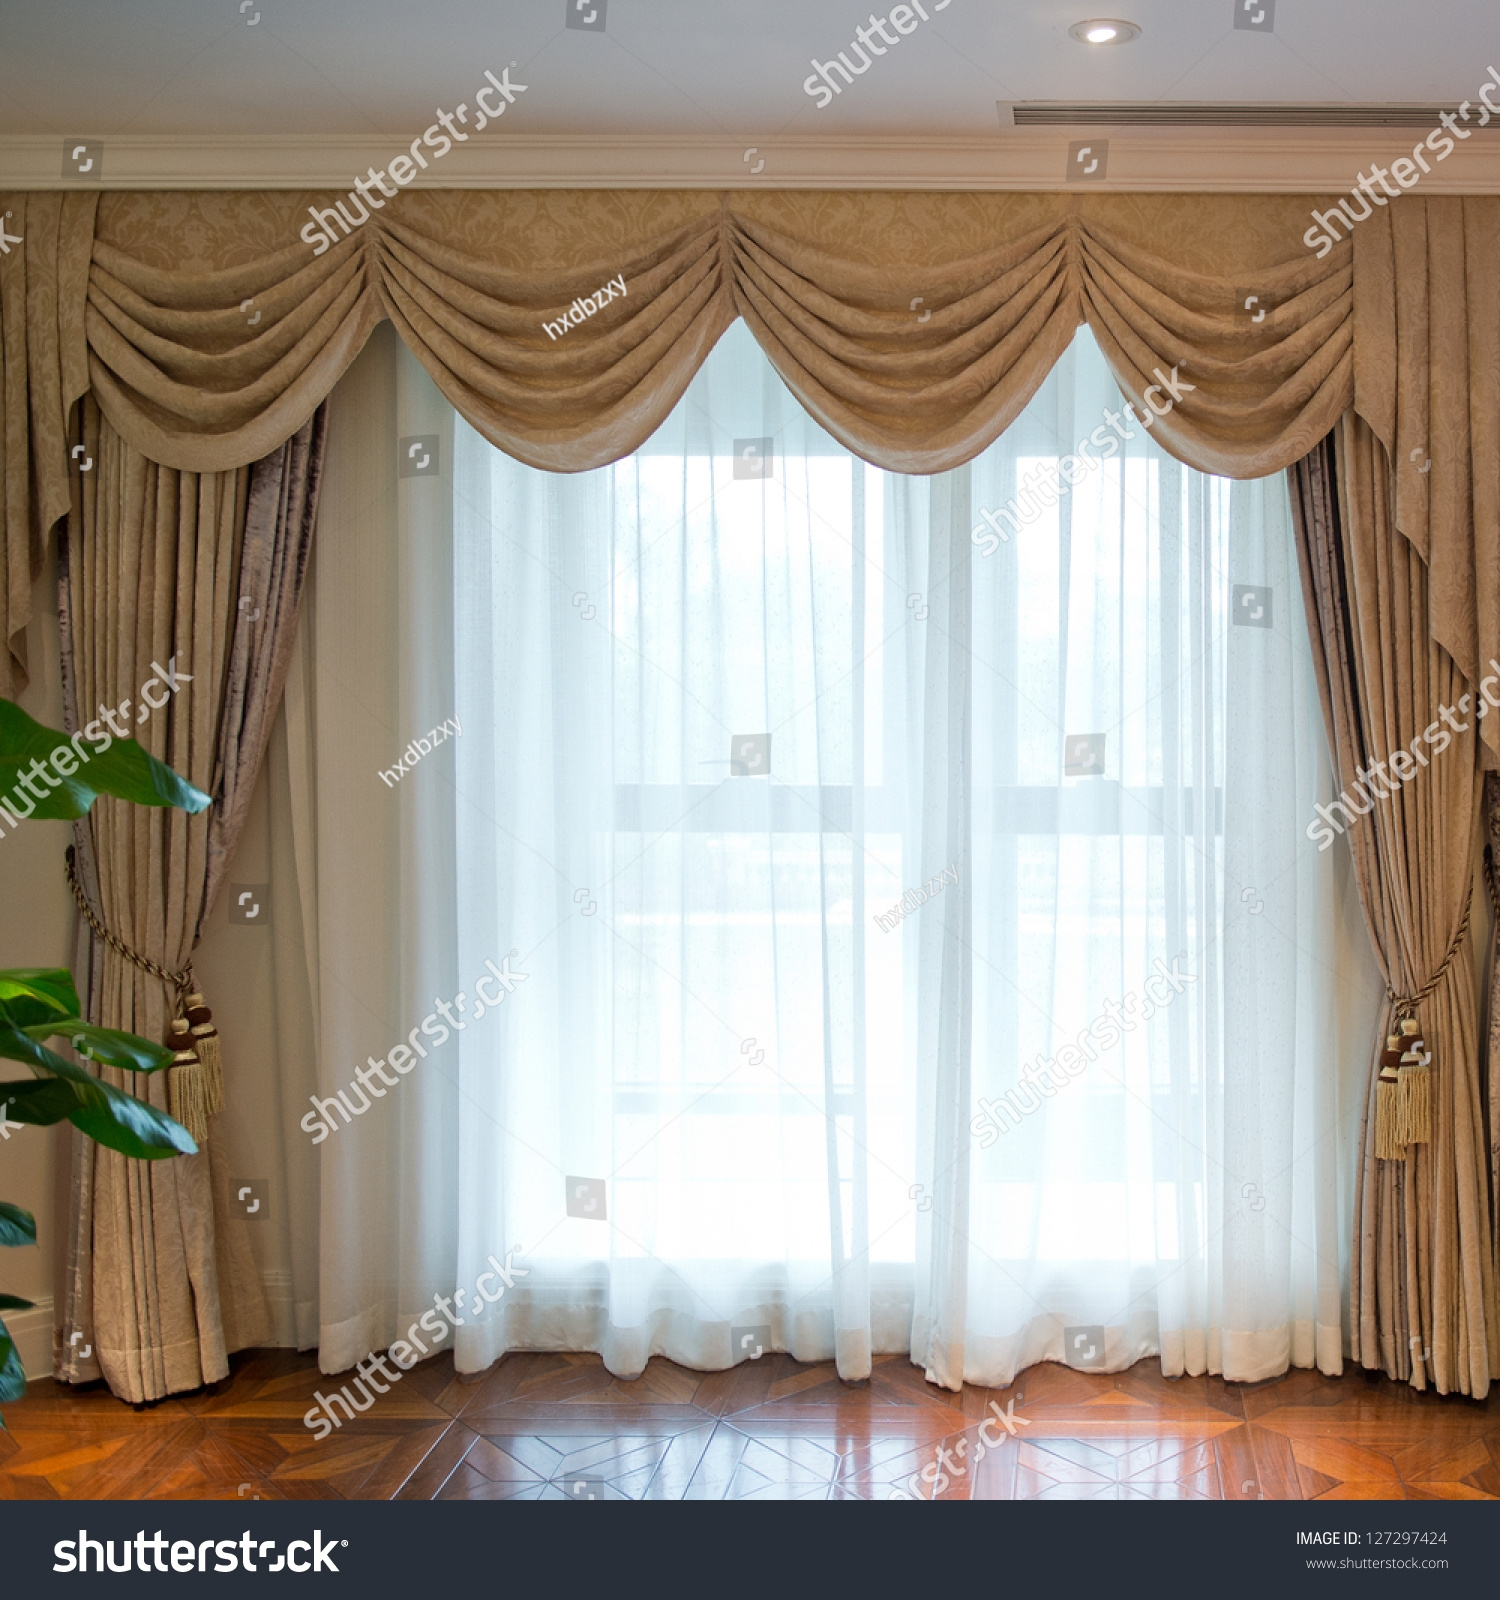 Luxury Curtain Copyspace Middle Stock Photo 127297424 Shutterstock Within Luxury Curtains (View 4 of 15)